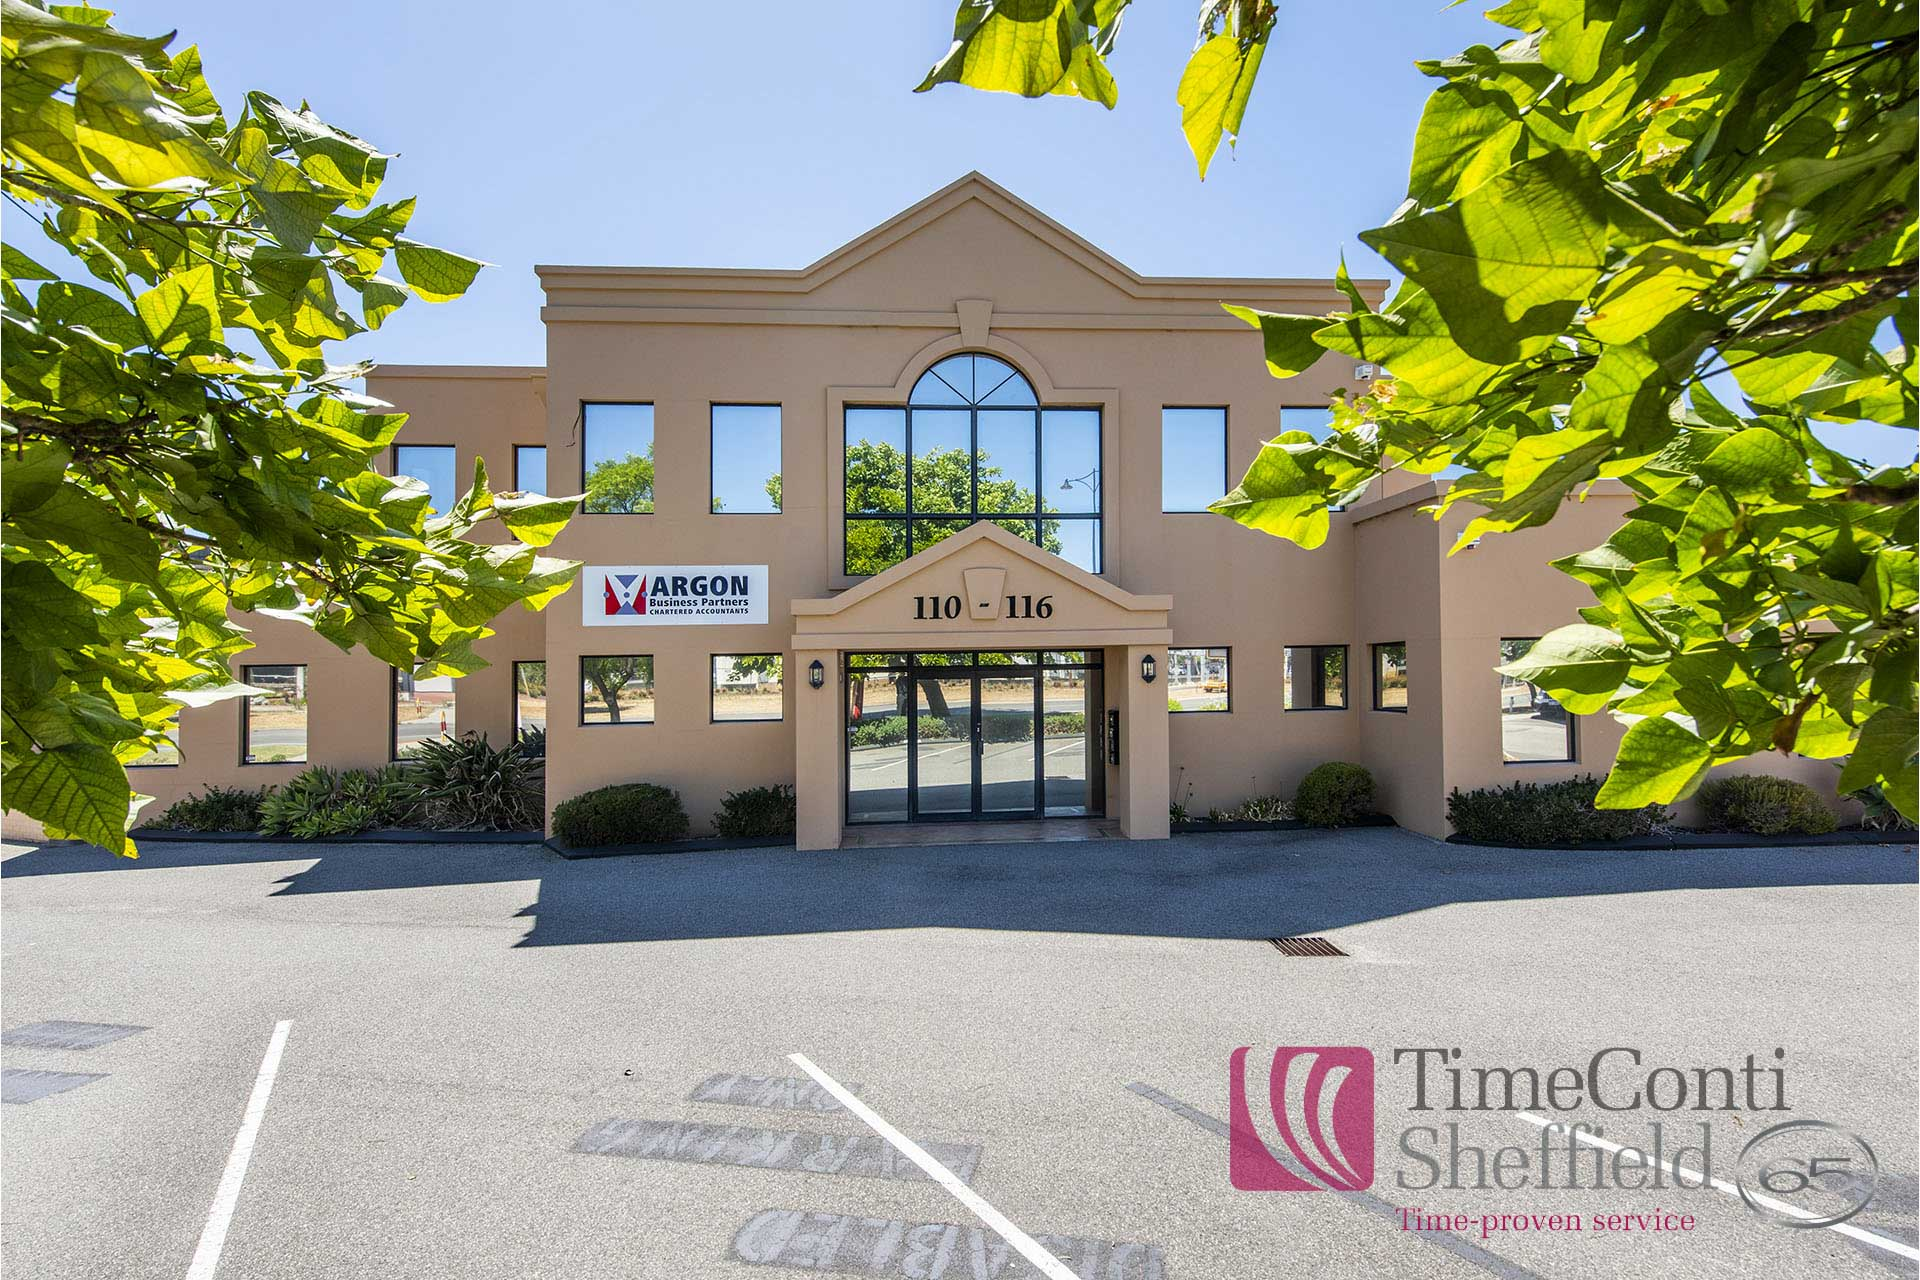 PRICE REDUCTION TO $150/m - FLEXIBLE TERMS AVAILABLE